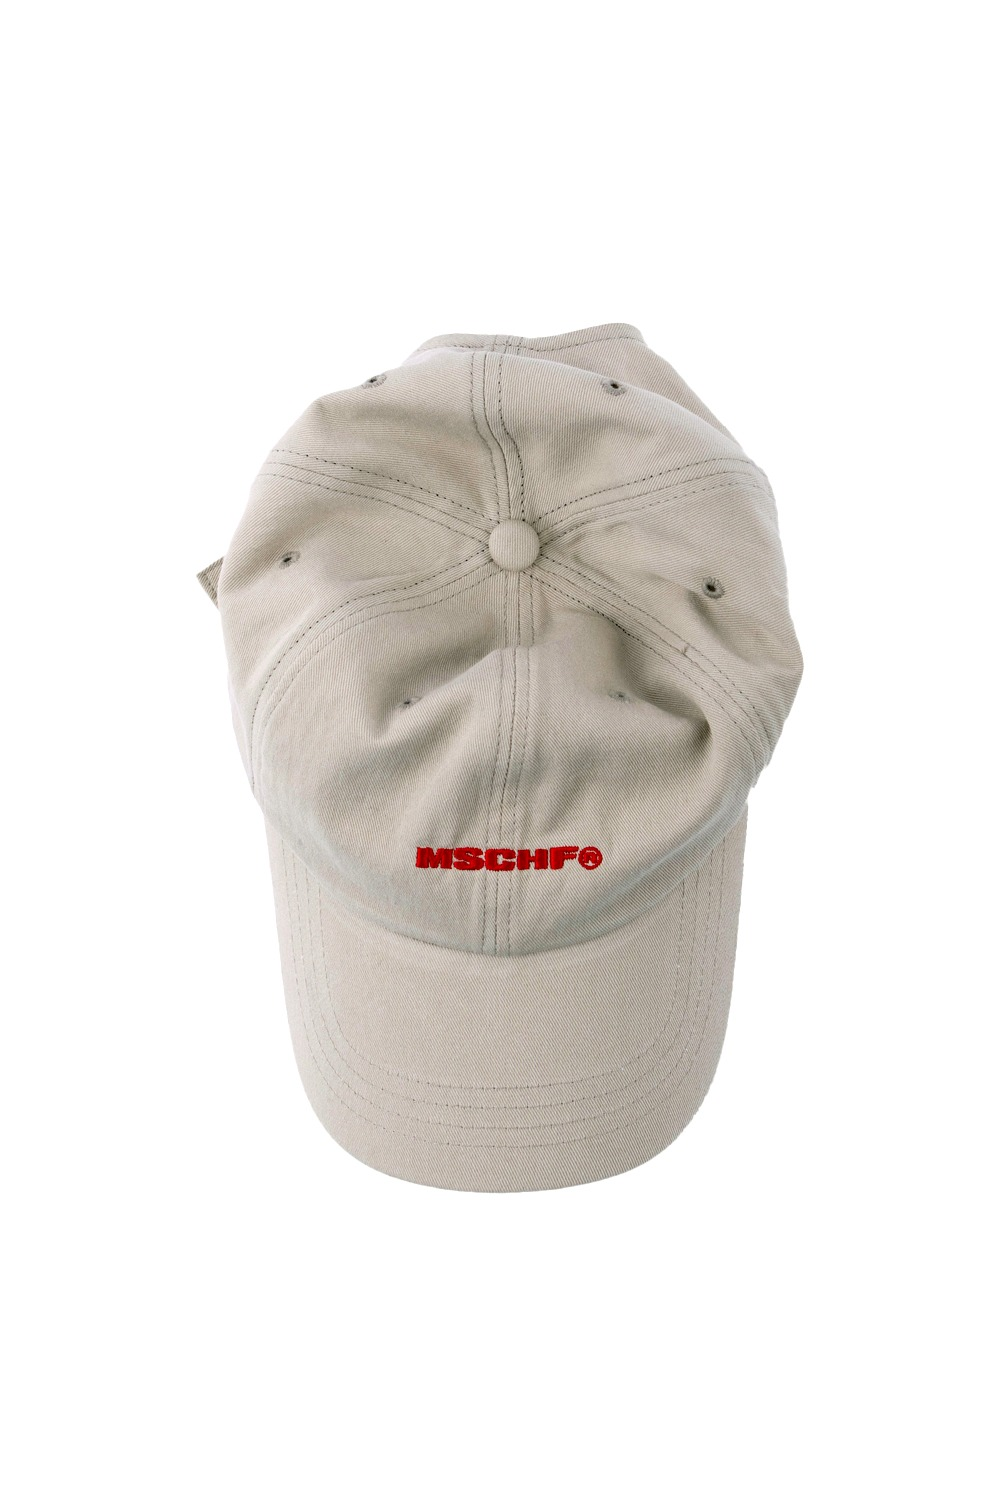 BASIC BALL CAP_stone beige